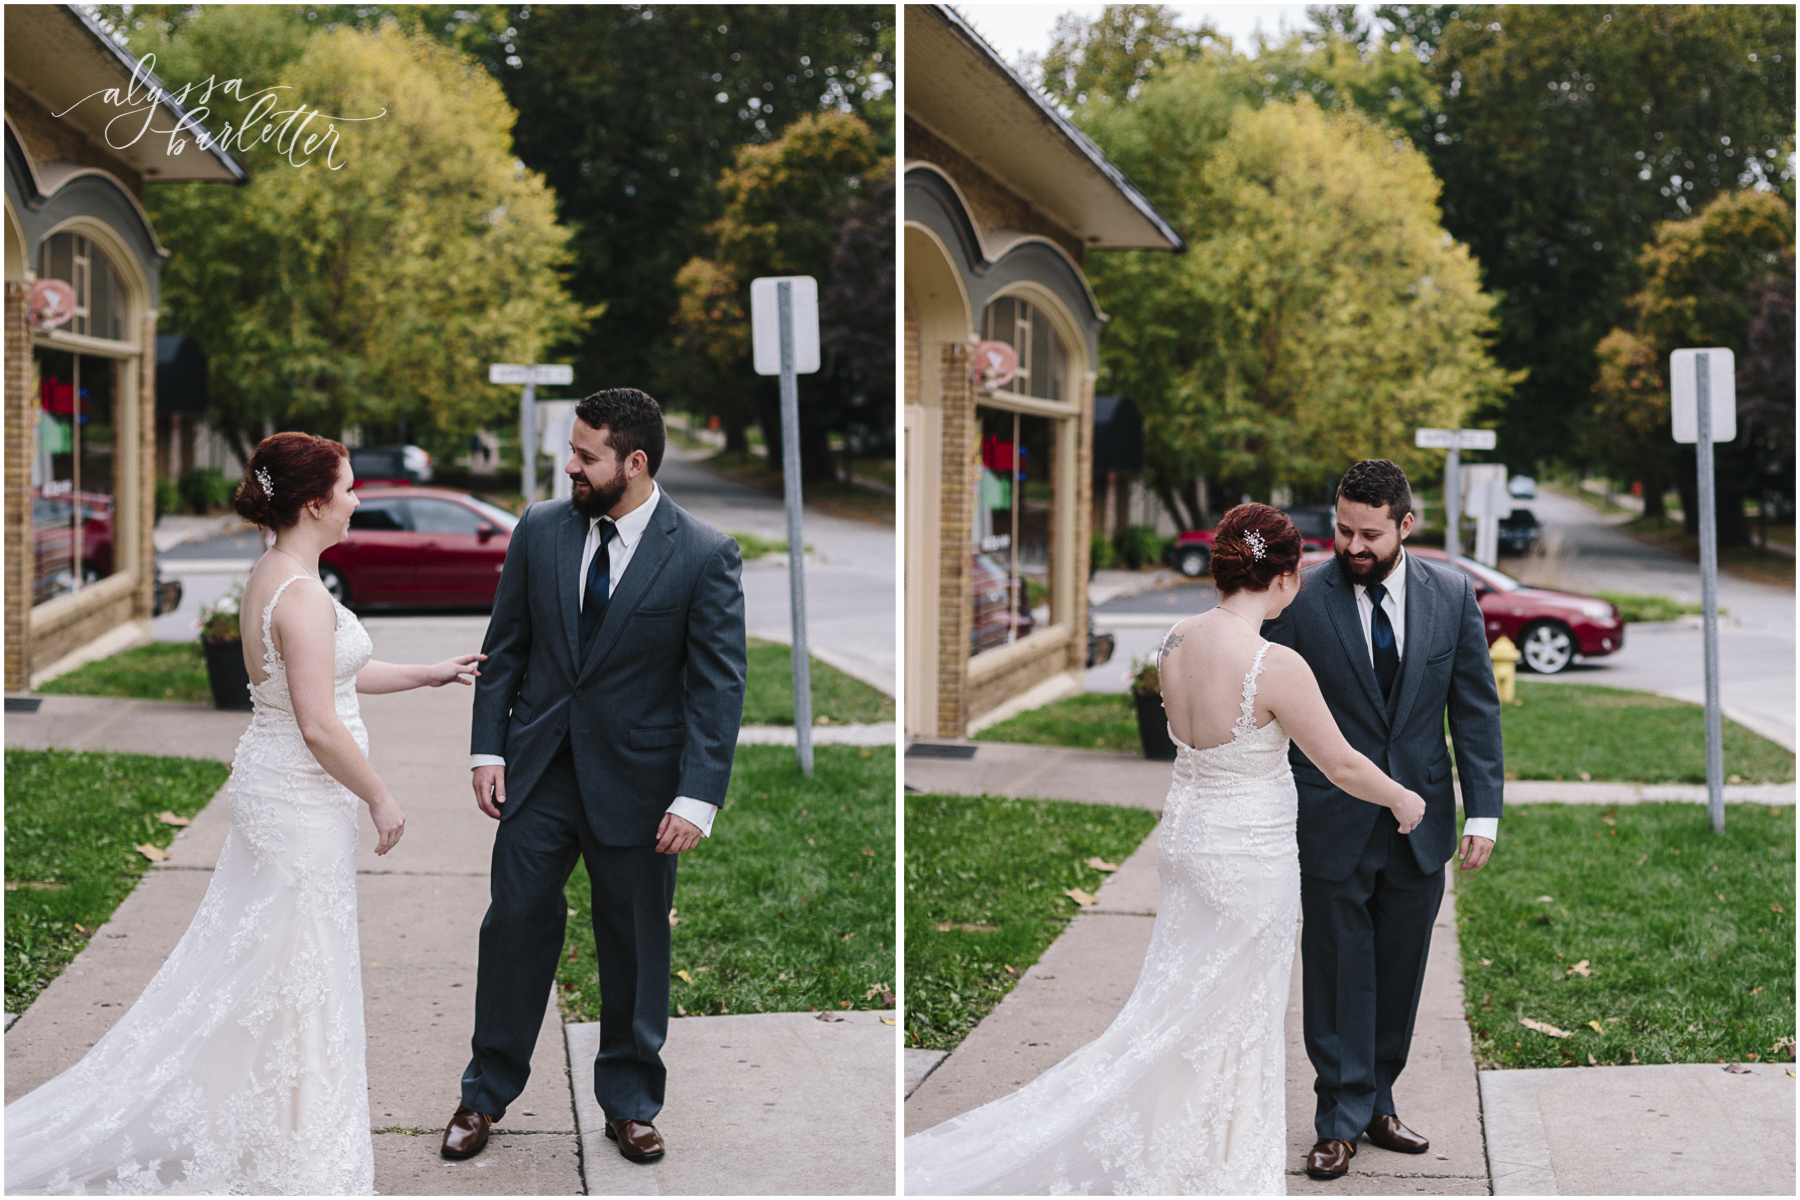 alyssa barletter photography wedding liberty missouri hipster quirky alex and shawn-1-10.jpg